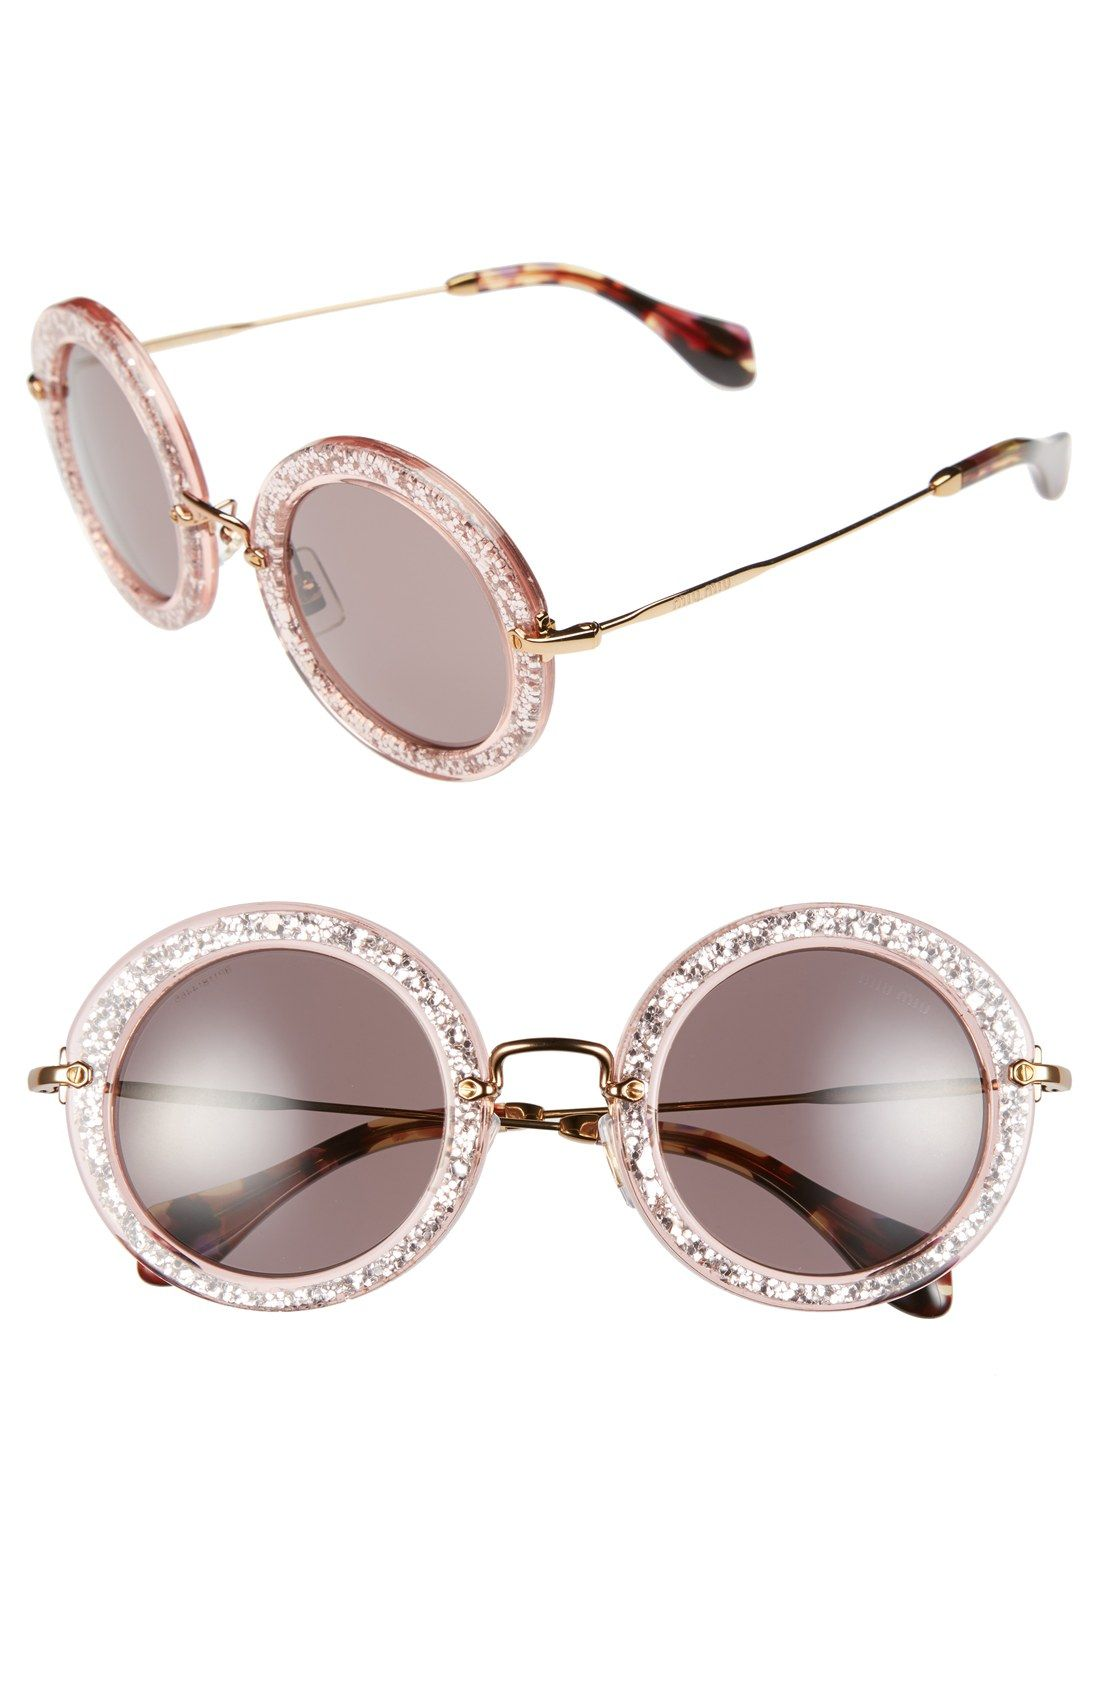 85afee4e55 These pink glitter Miu Miu round sunglasses are on the wish list ...